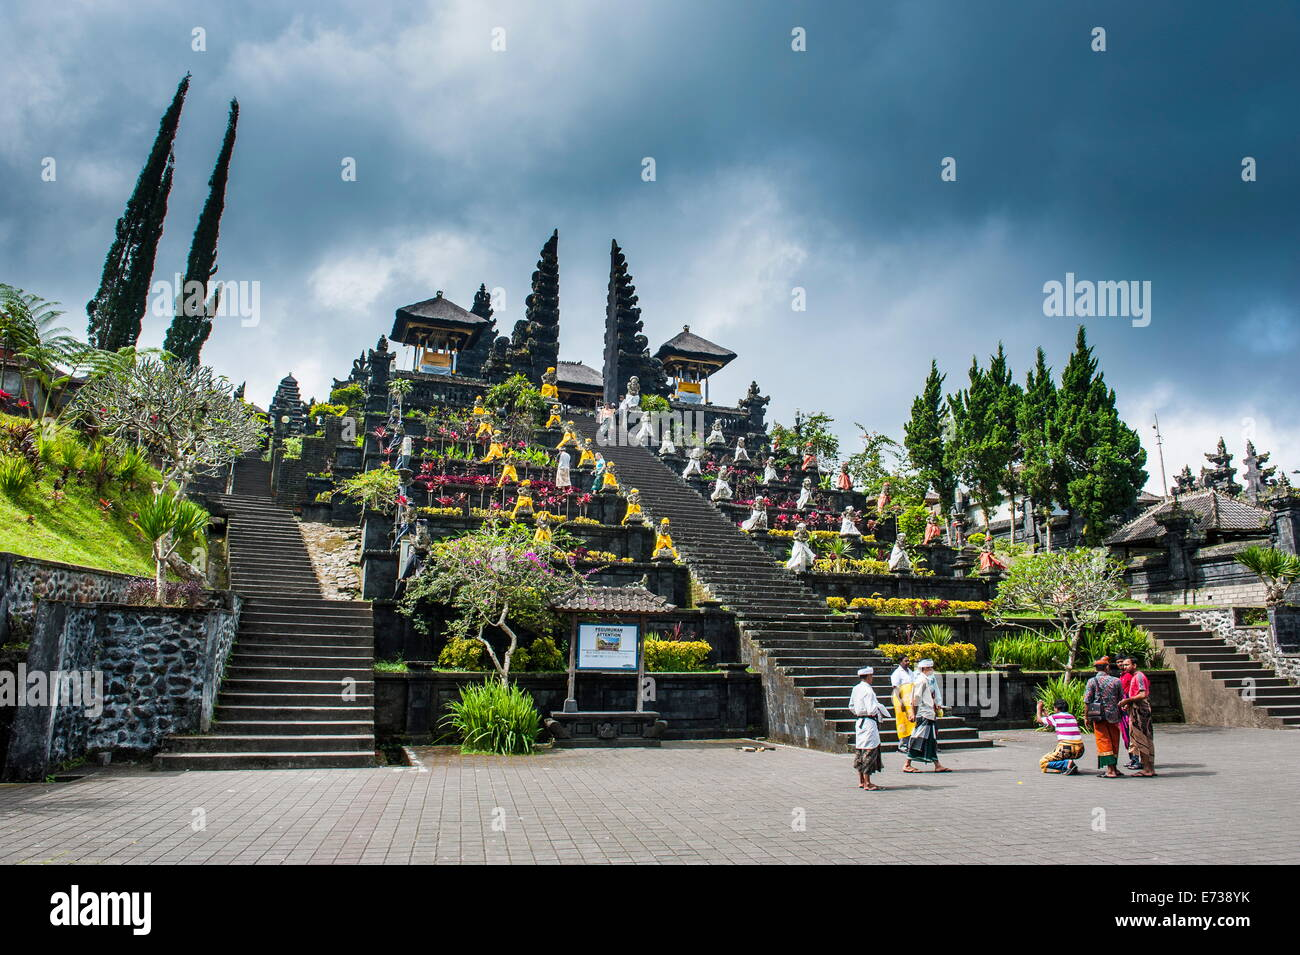 Stone statues with colourful capes in the Pura Besakih temple complex, Bali, Indonesia, Southeast Asia, Asia - Stock Image